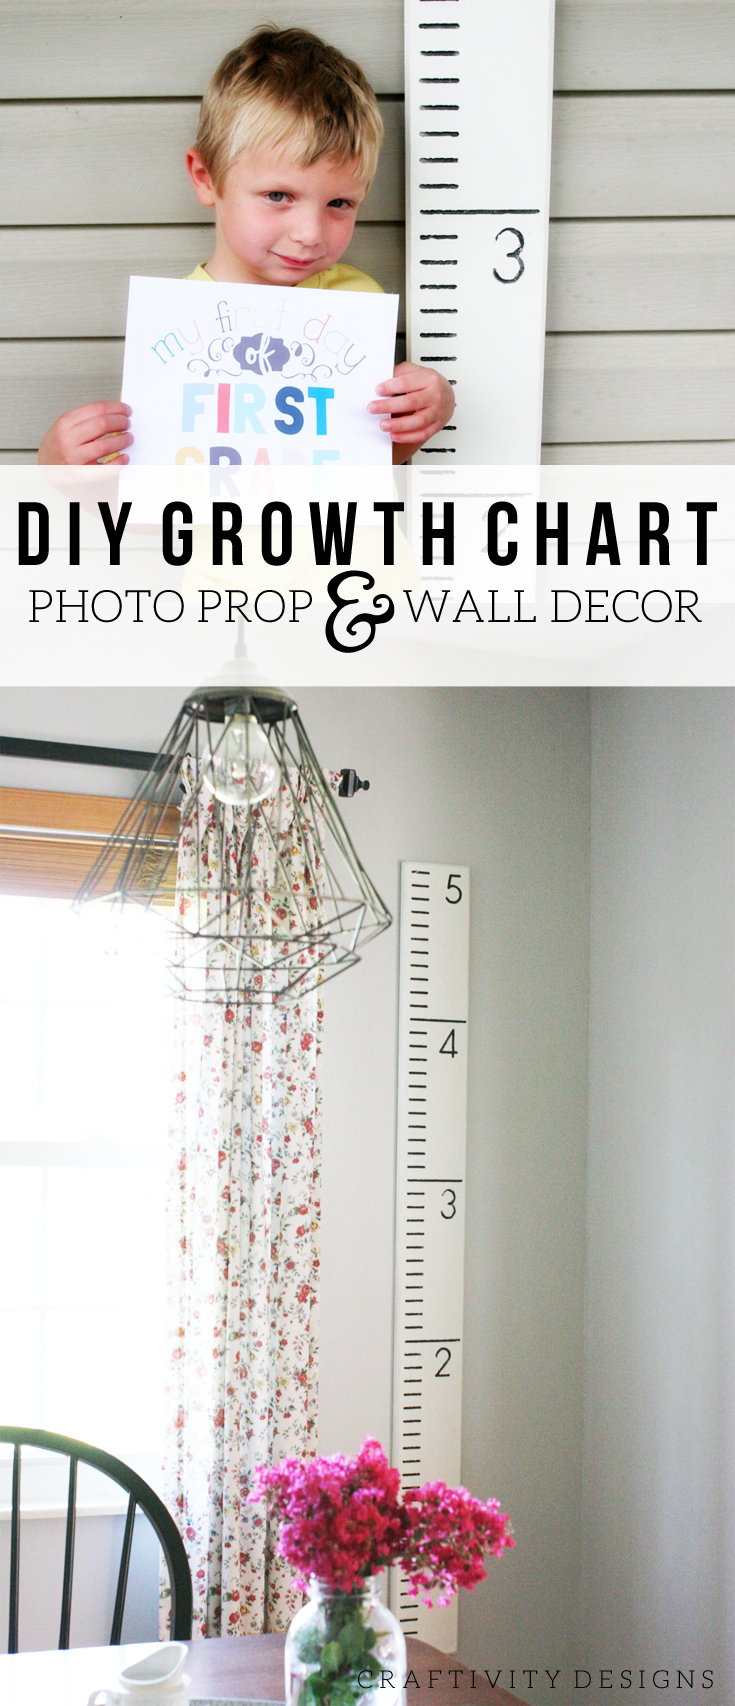 DIY Growth Chart Photo Prop + Wall Decor, How to Make a DIY Growth Chart, by @CraftivityD